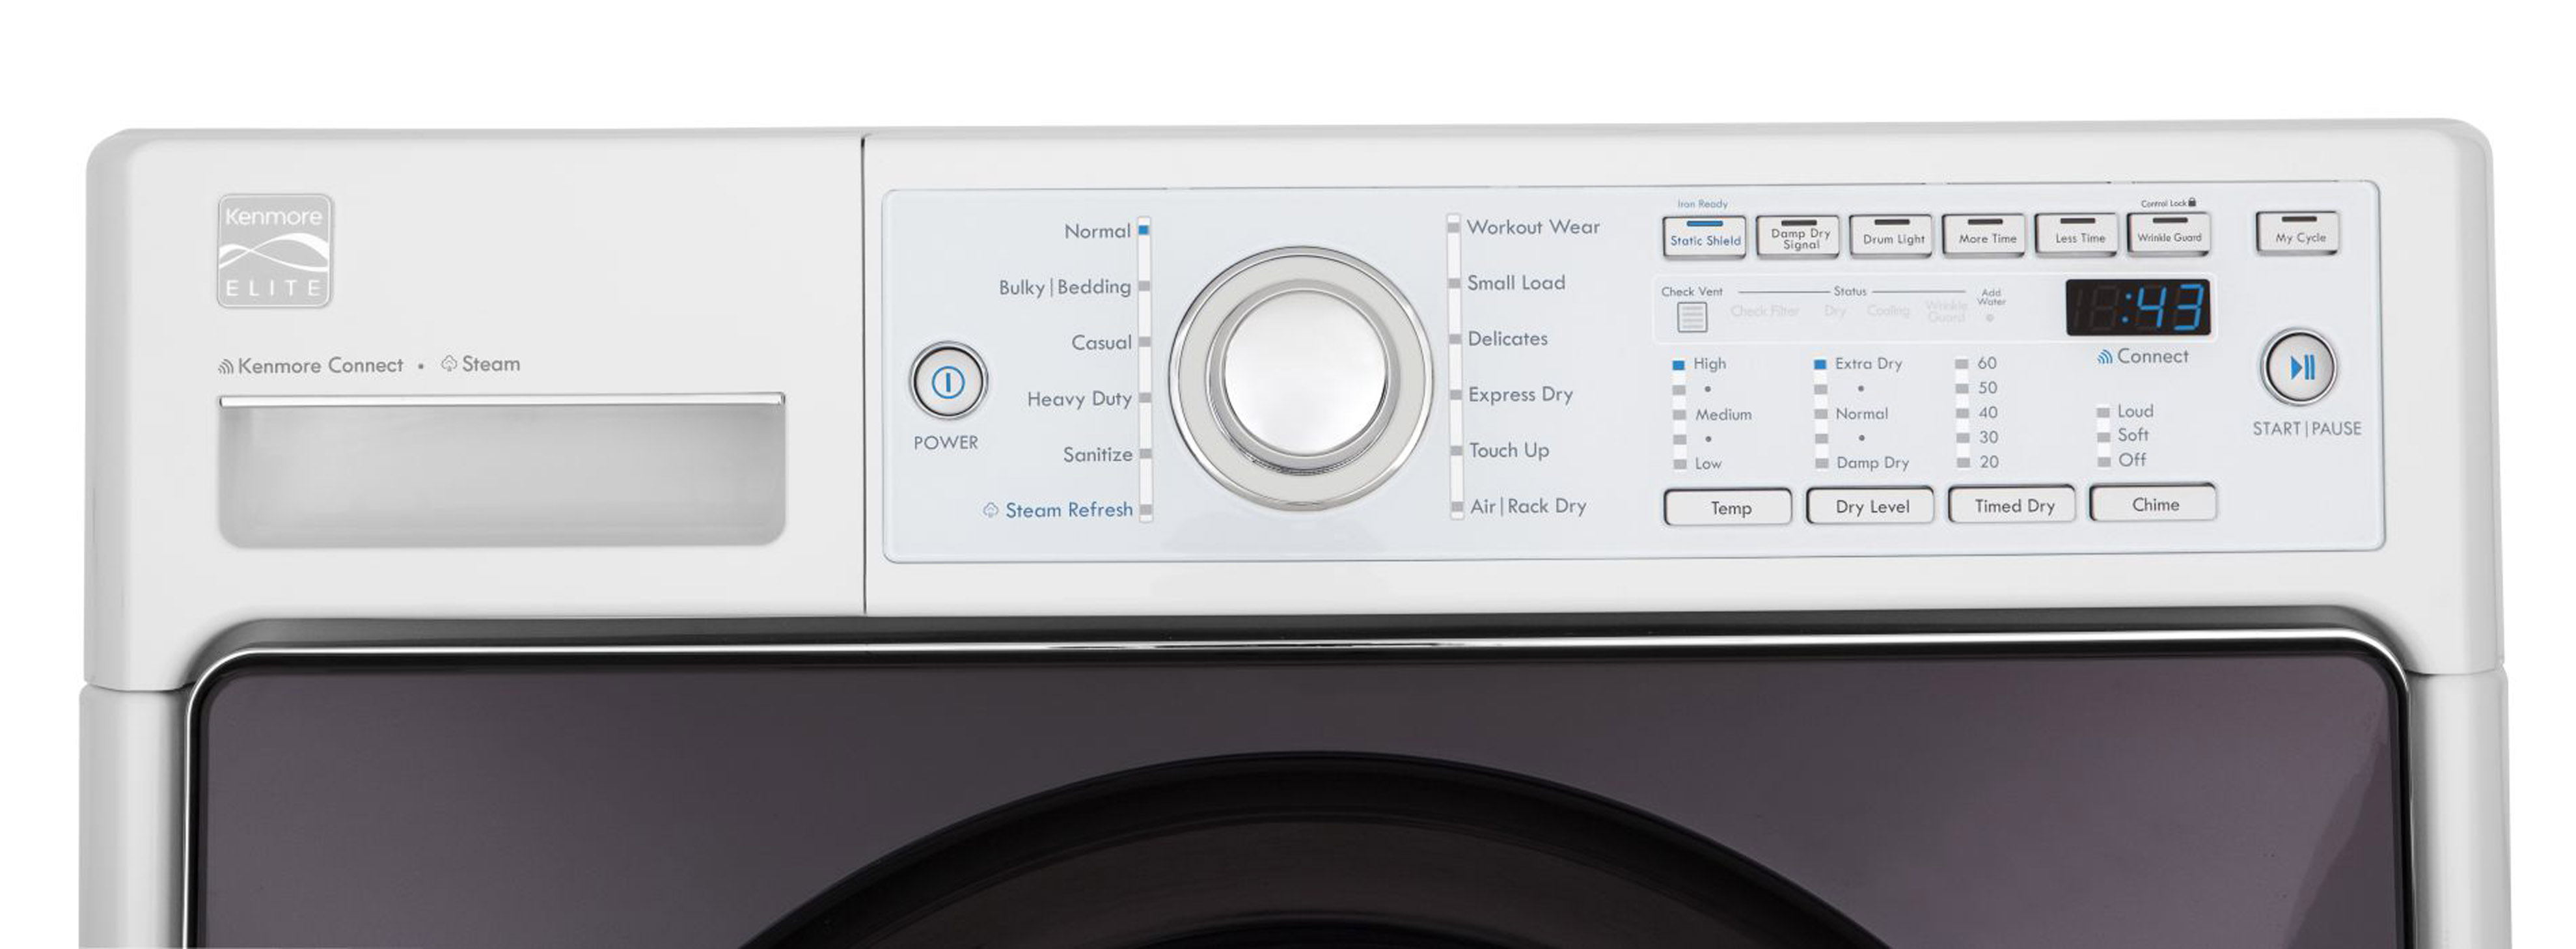 Kenmore Elite 7.3 cu. ft. Electric Steam Dryer - White